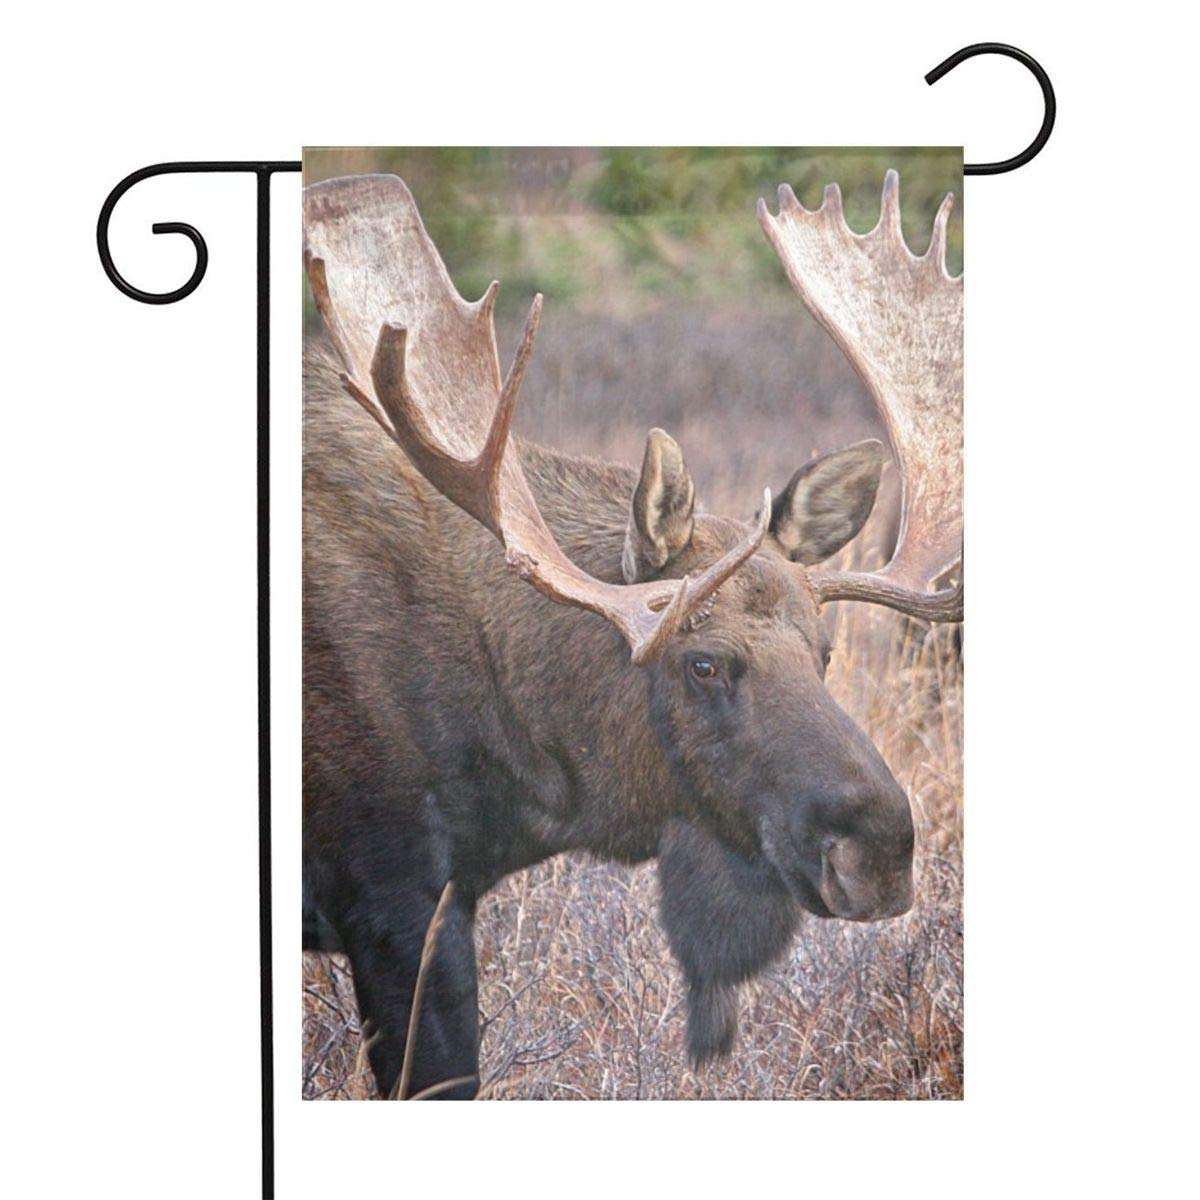 Moose Garden Flags House Indoor & Outdoor Holiday Decorations,Waterproof Polyester Yard Decorative for Game Family Party Banner